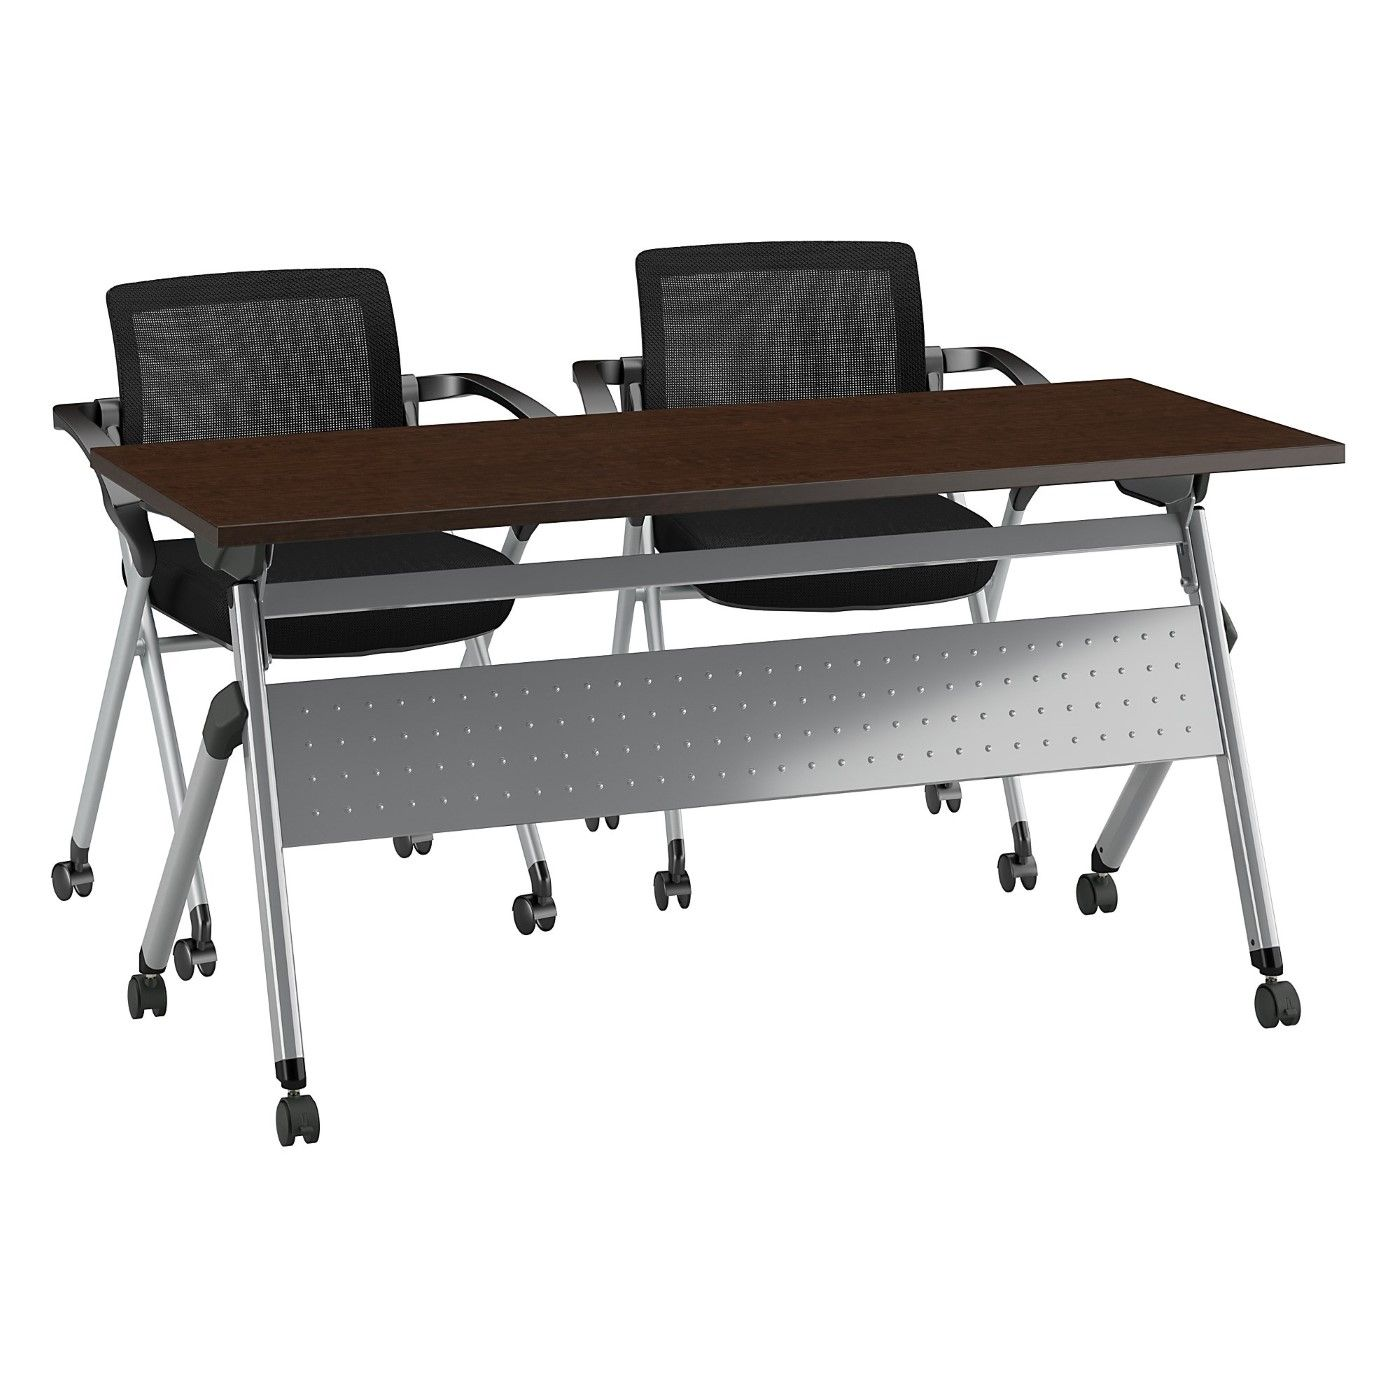 BUSH BUSINESS FURNITURE 60W X 24D FOLDING TRAINING TABLE WITH SET OF 2 FOLDING CHAIRS. FREE SHIPPING